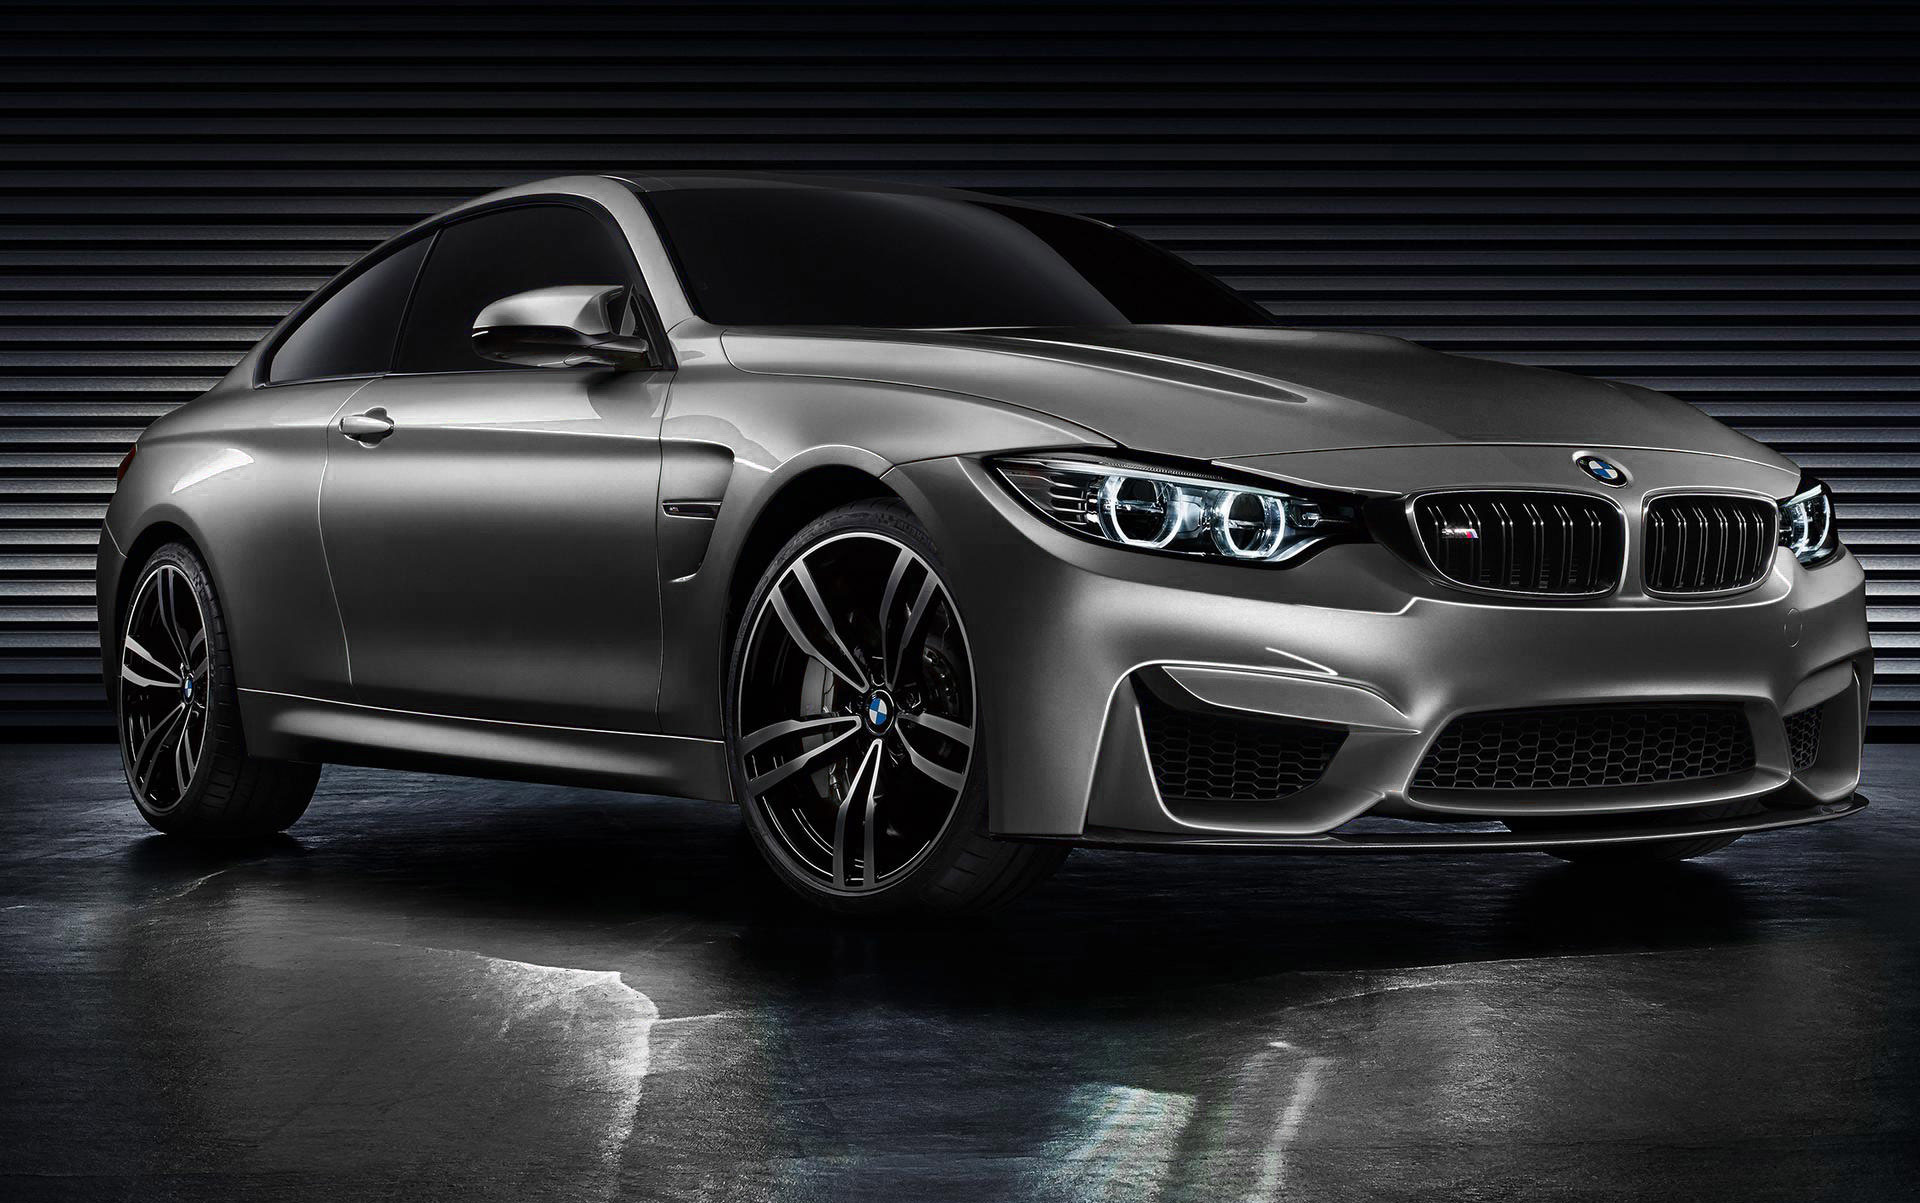 Bmw M4 Wallpaper 36033 1920x1203 Px Hdwallsource Com